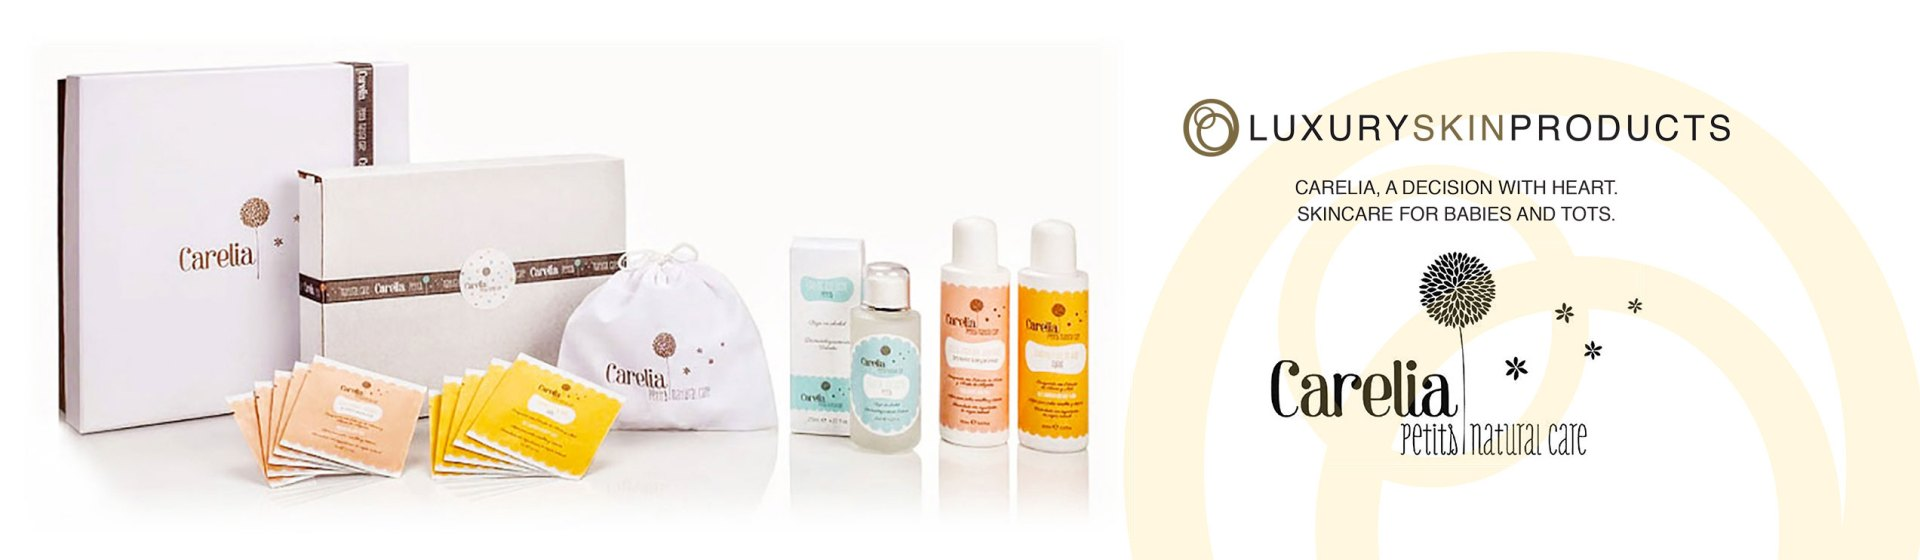 Carelia, a decision with heart. Skincare for babies and tots.